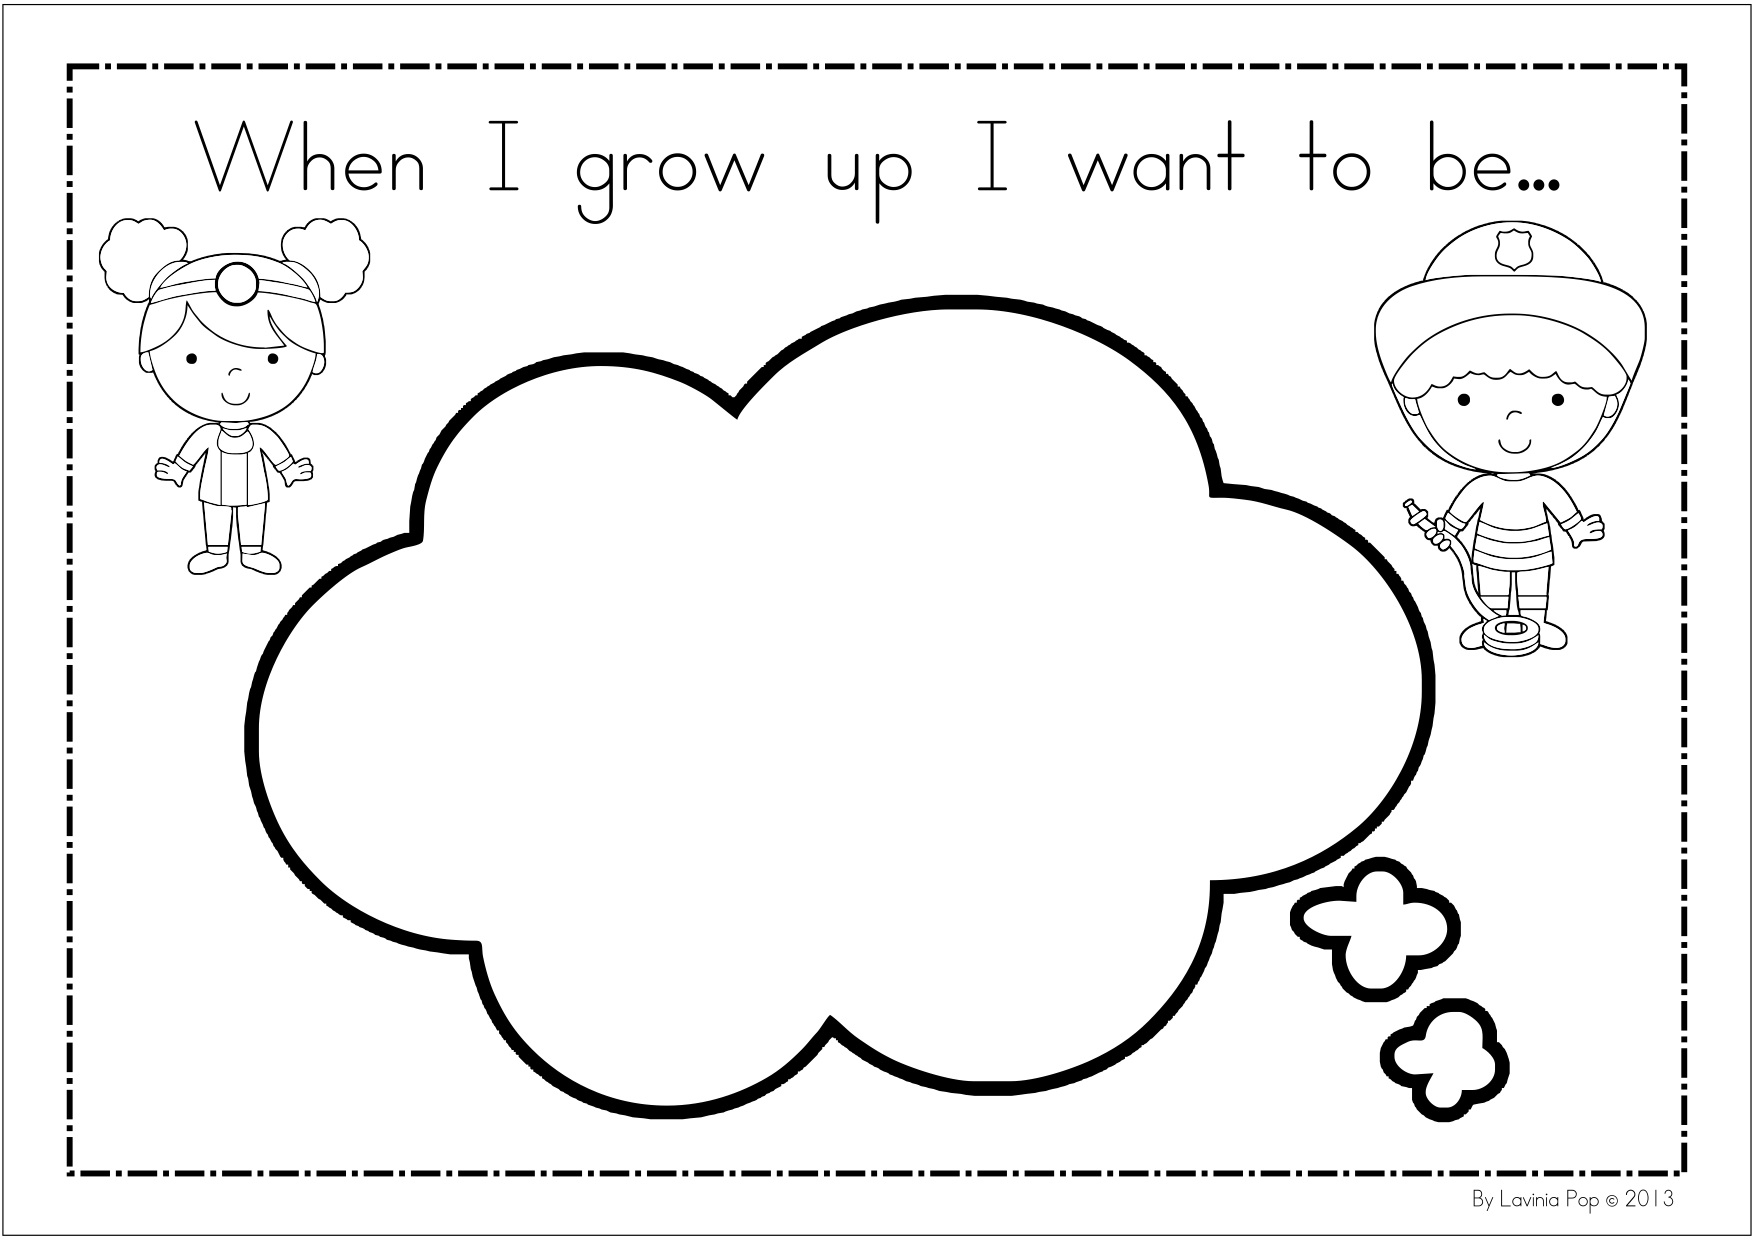 All About Me Worksheet For Kindergarten Free Worksheets Library